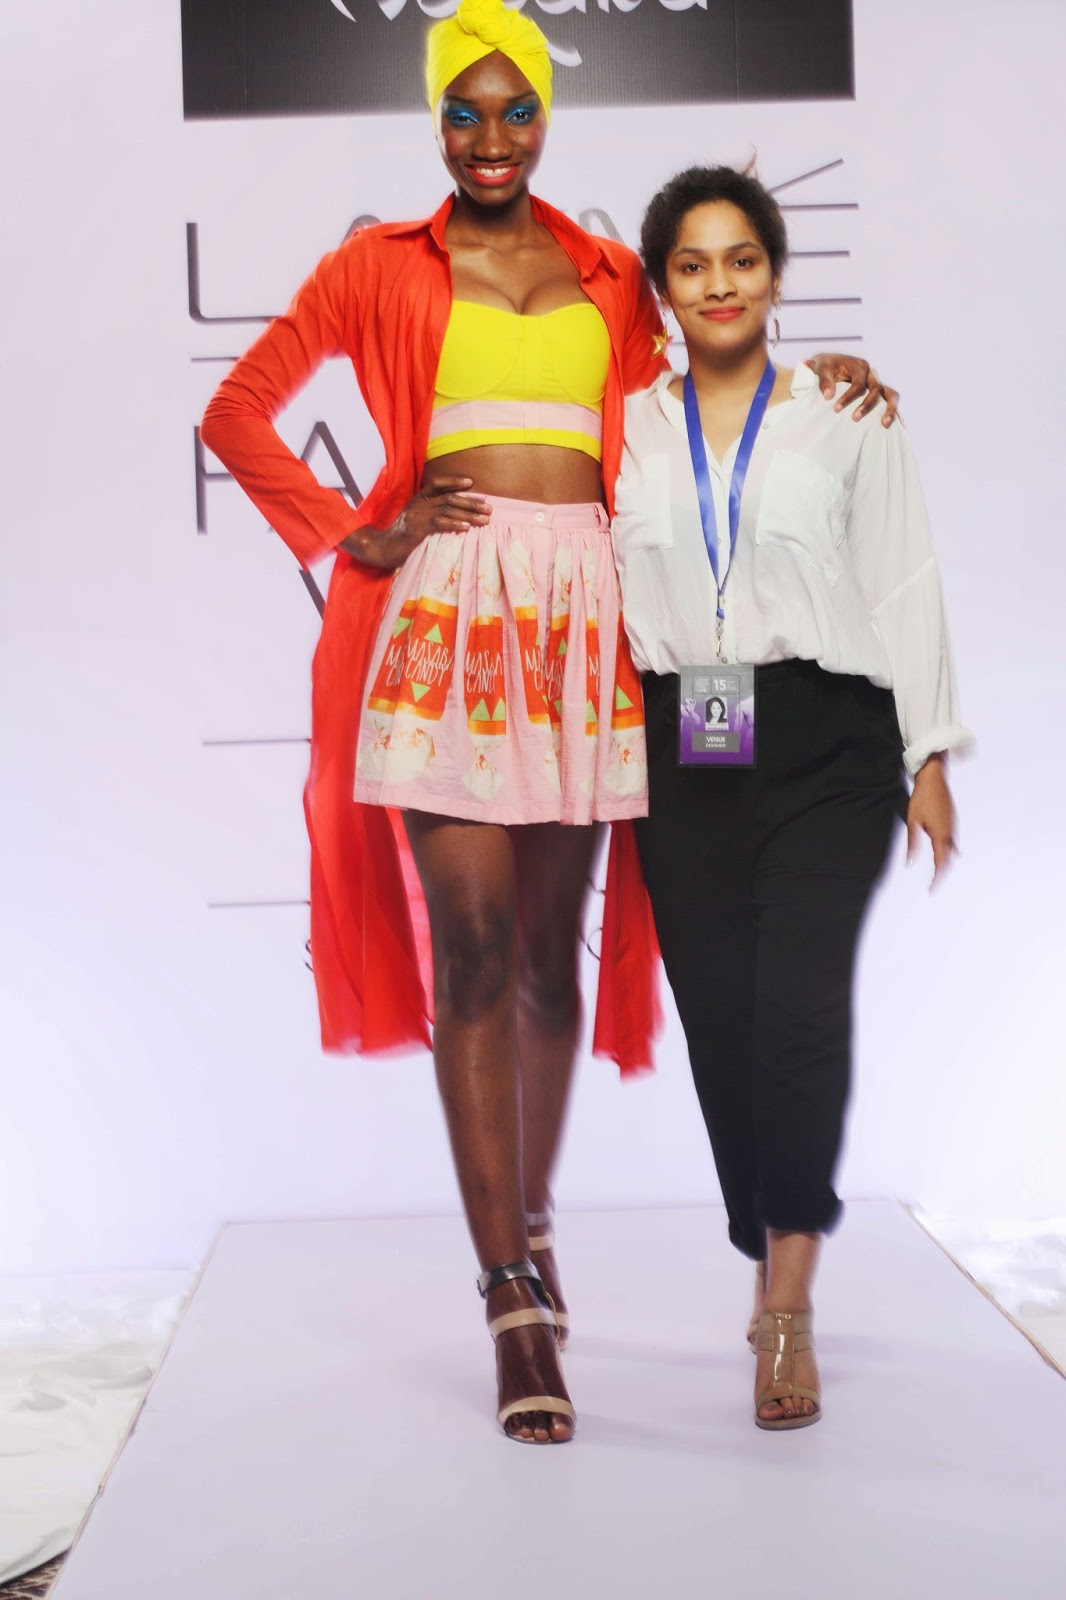 http://aquaintperspective.blogspot.in/, LIFW Day 1,Masaba Gupta